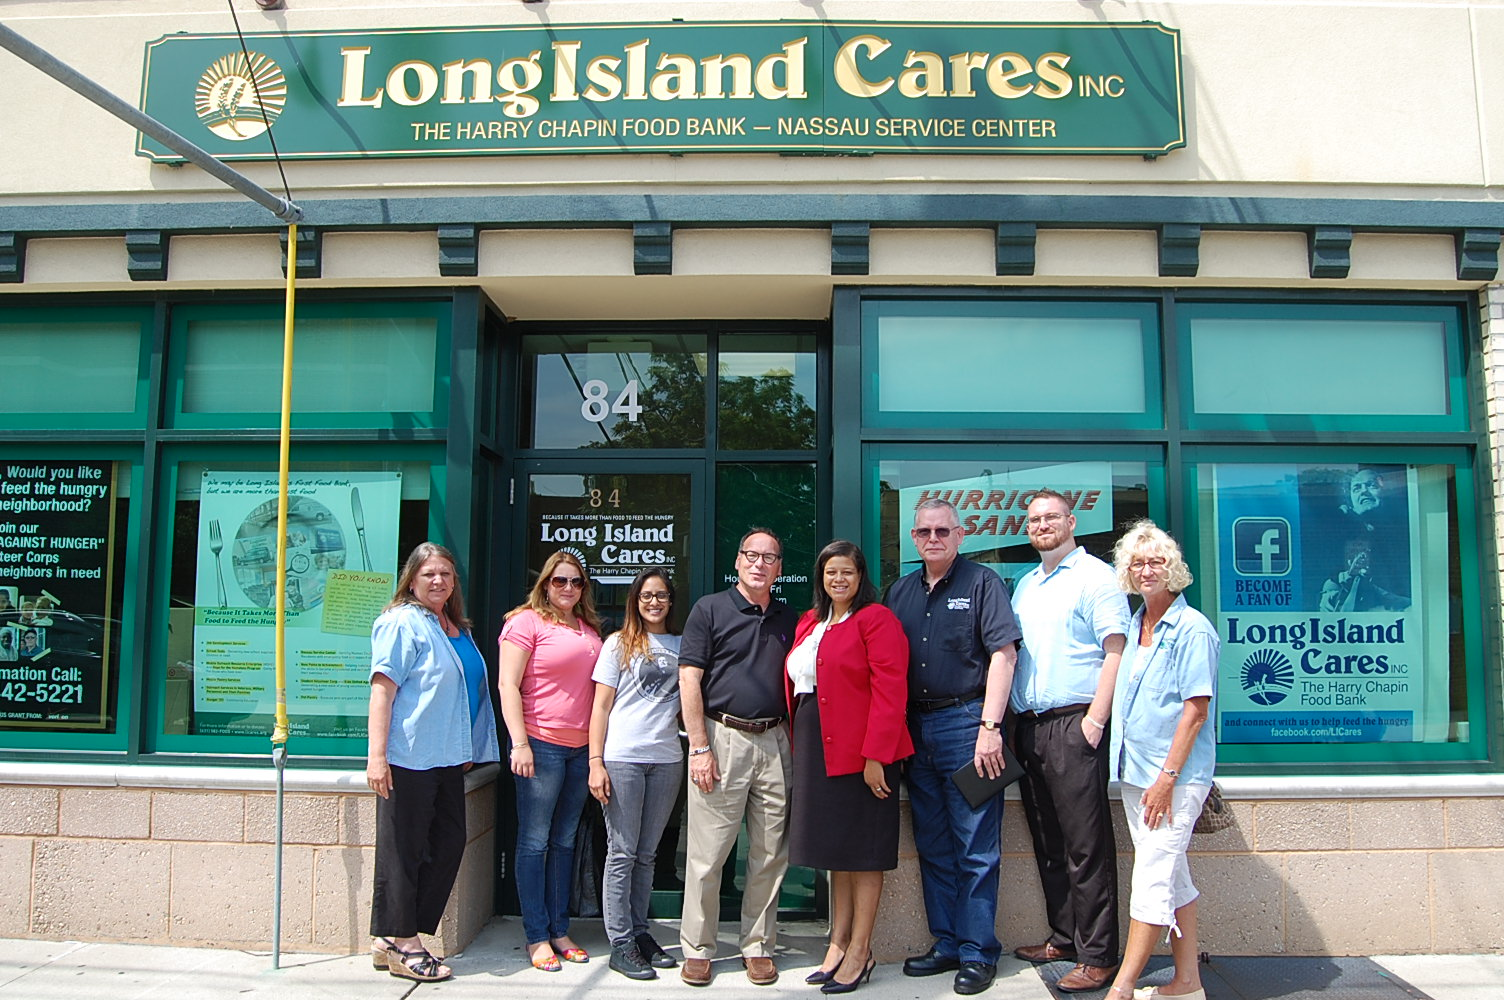 Assemblywoman Solages tours the Long Island Cares facility.